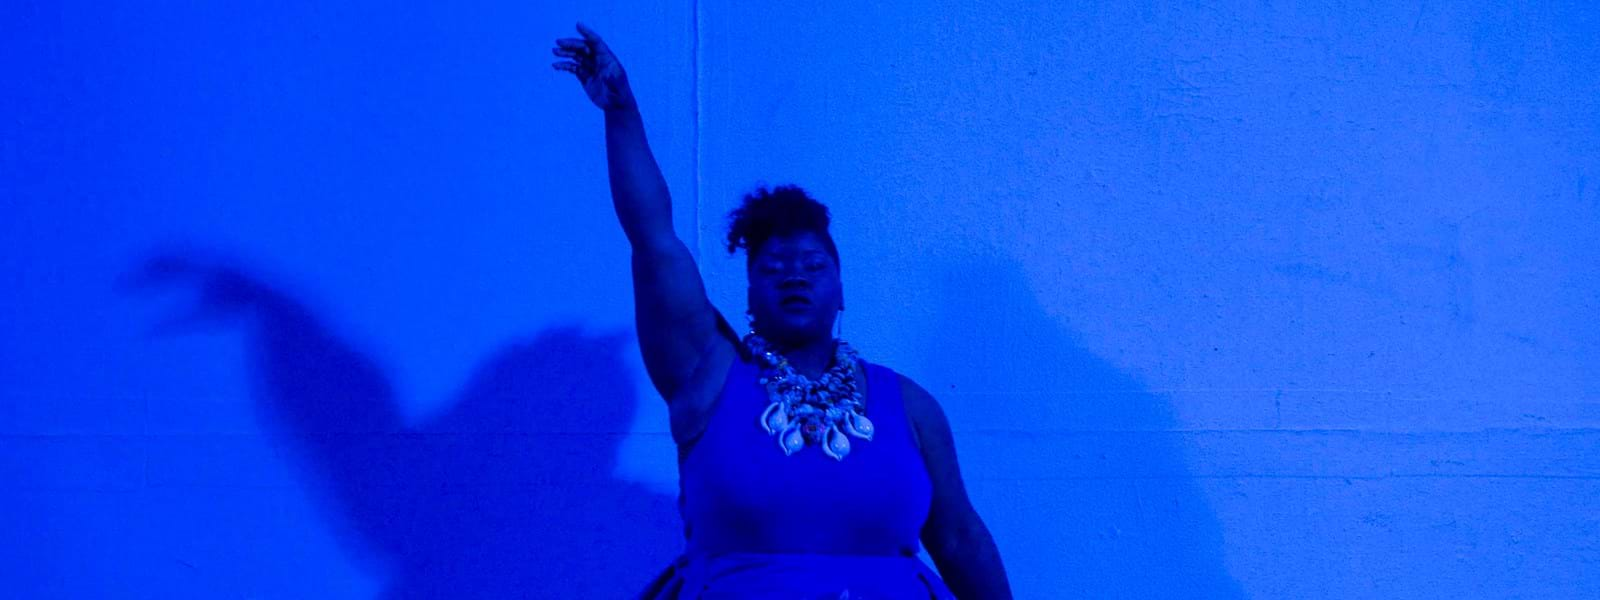 Vanessa German performing in Aetna Theater, Wadsworth Atheneum Museum of Art 2016. Photo Allen Phillips